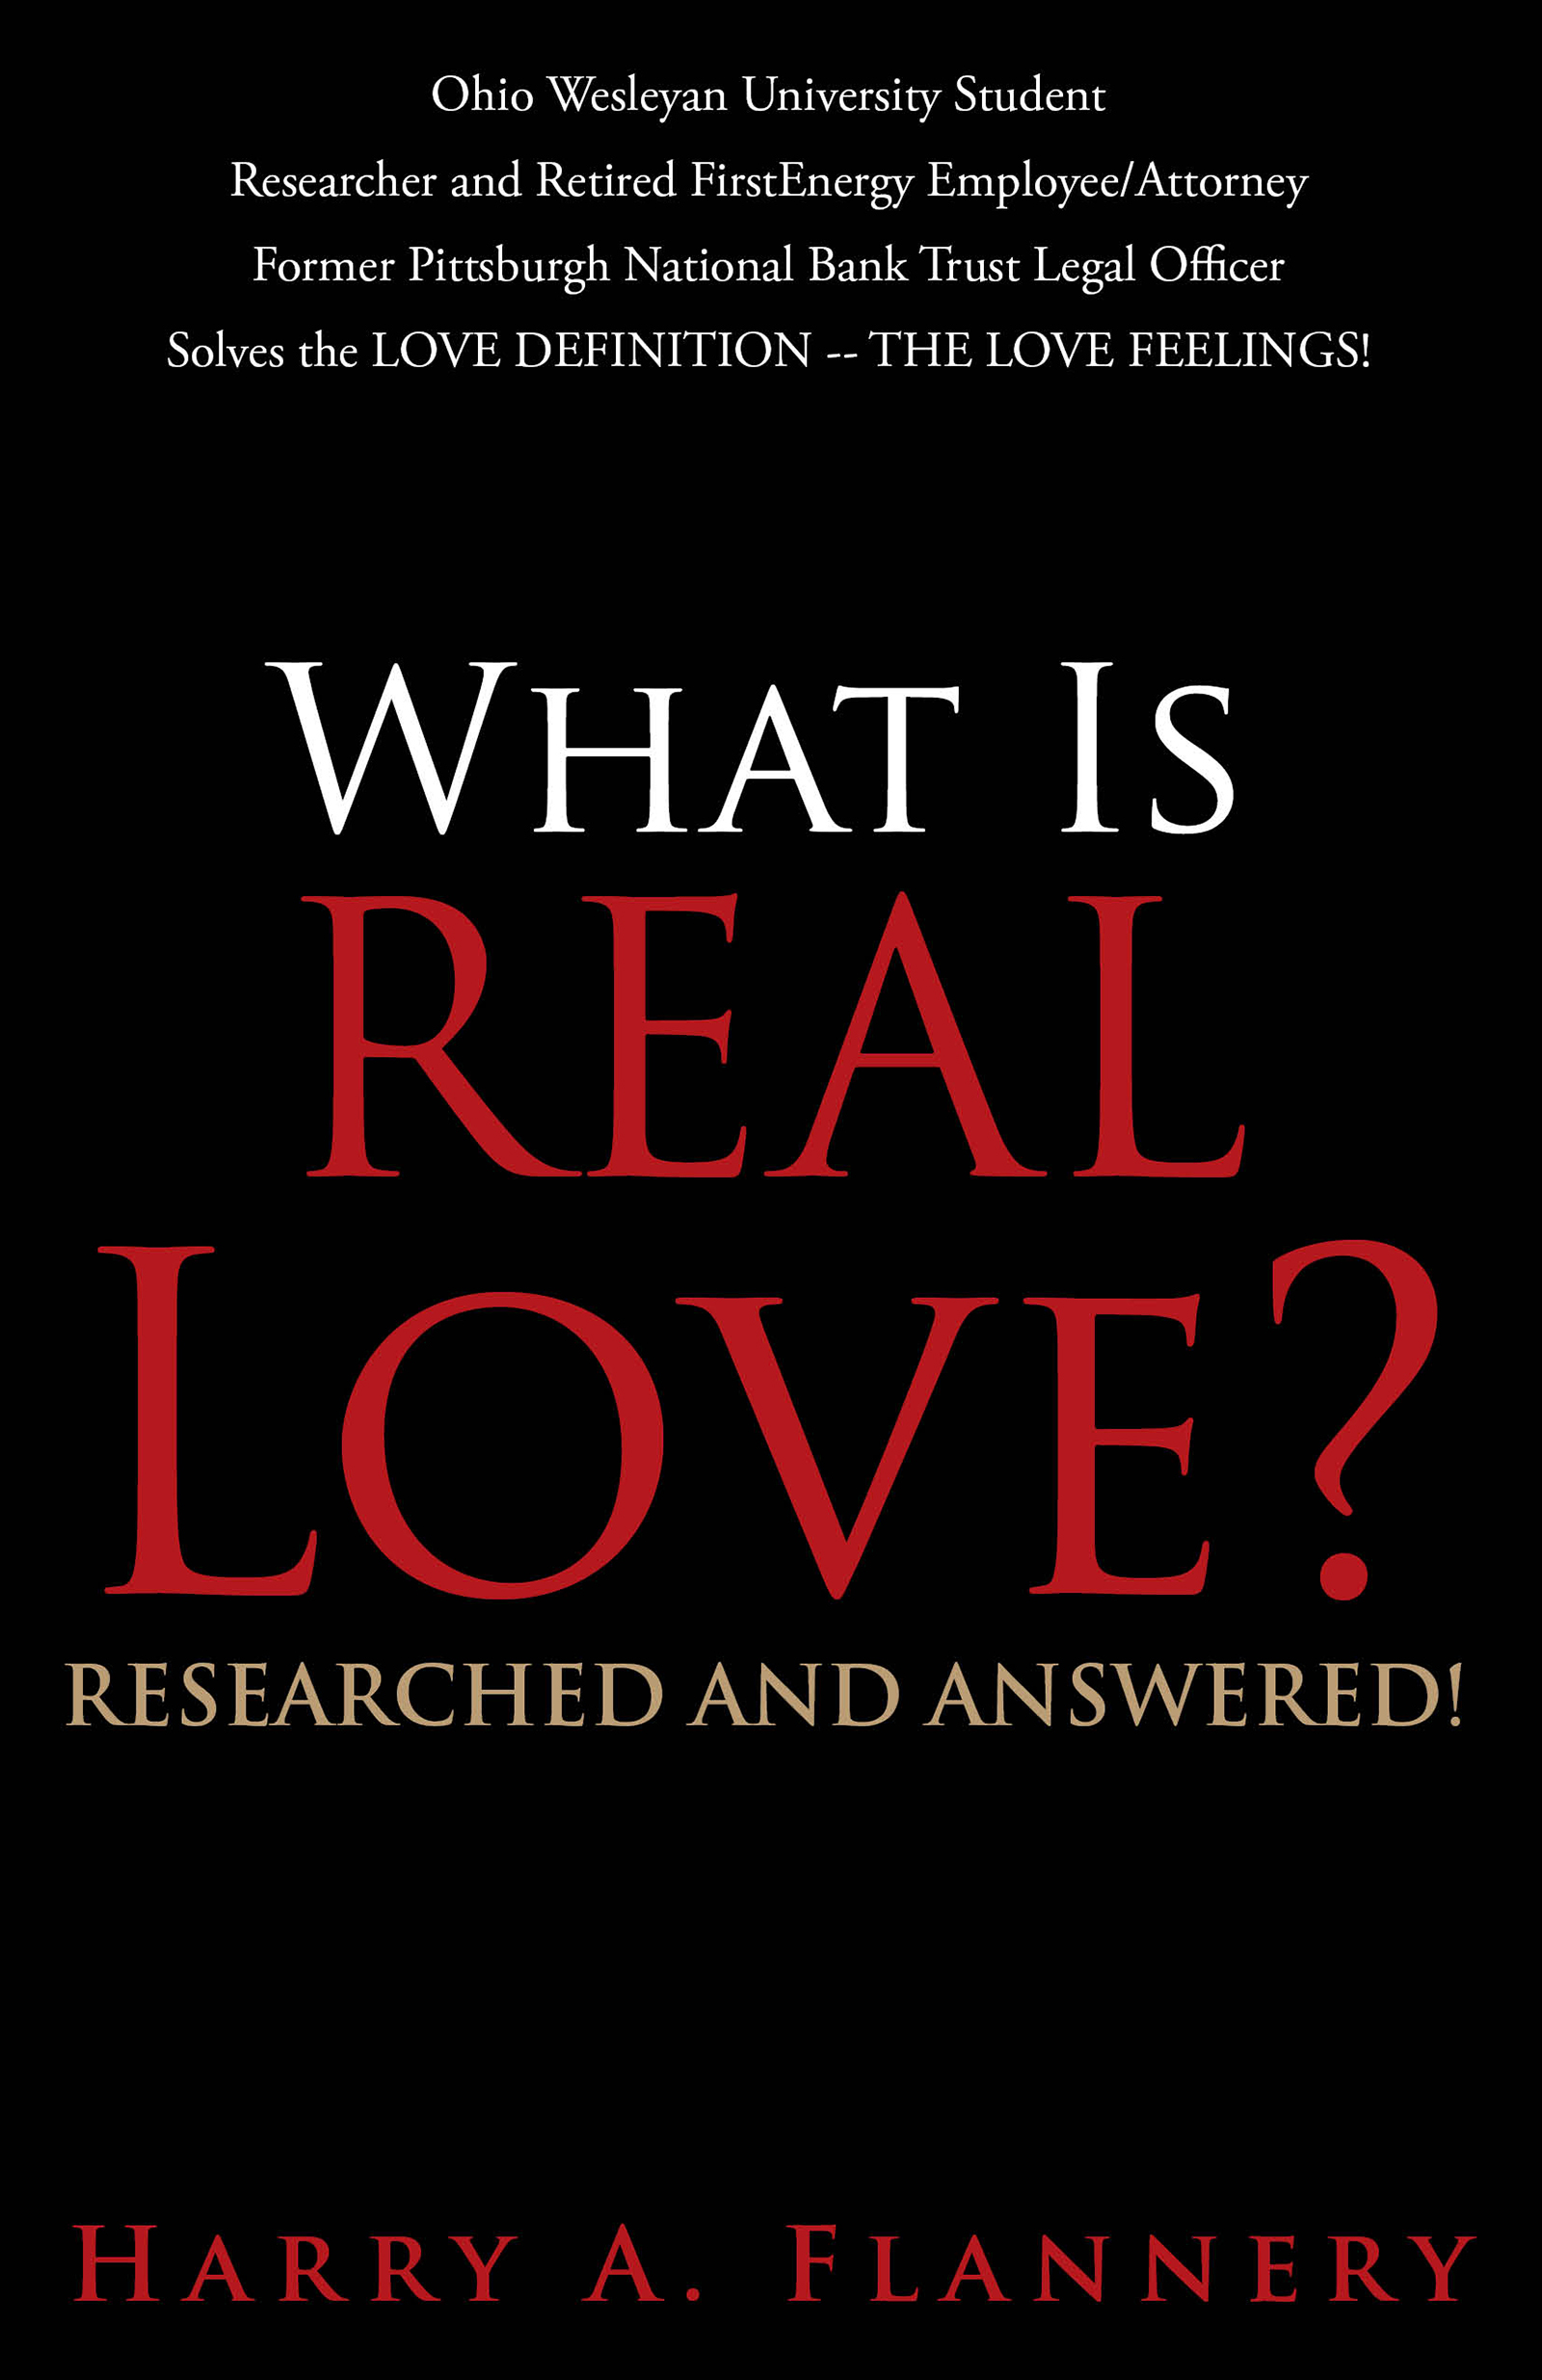 How to find lasting love without looking for it?